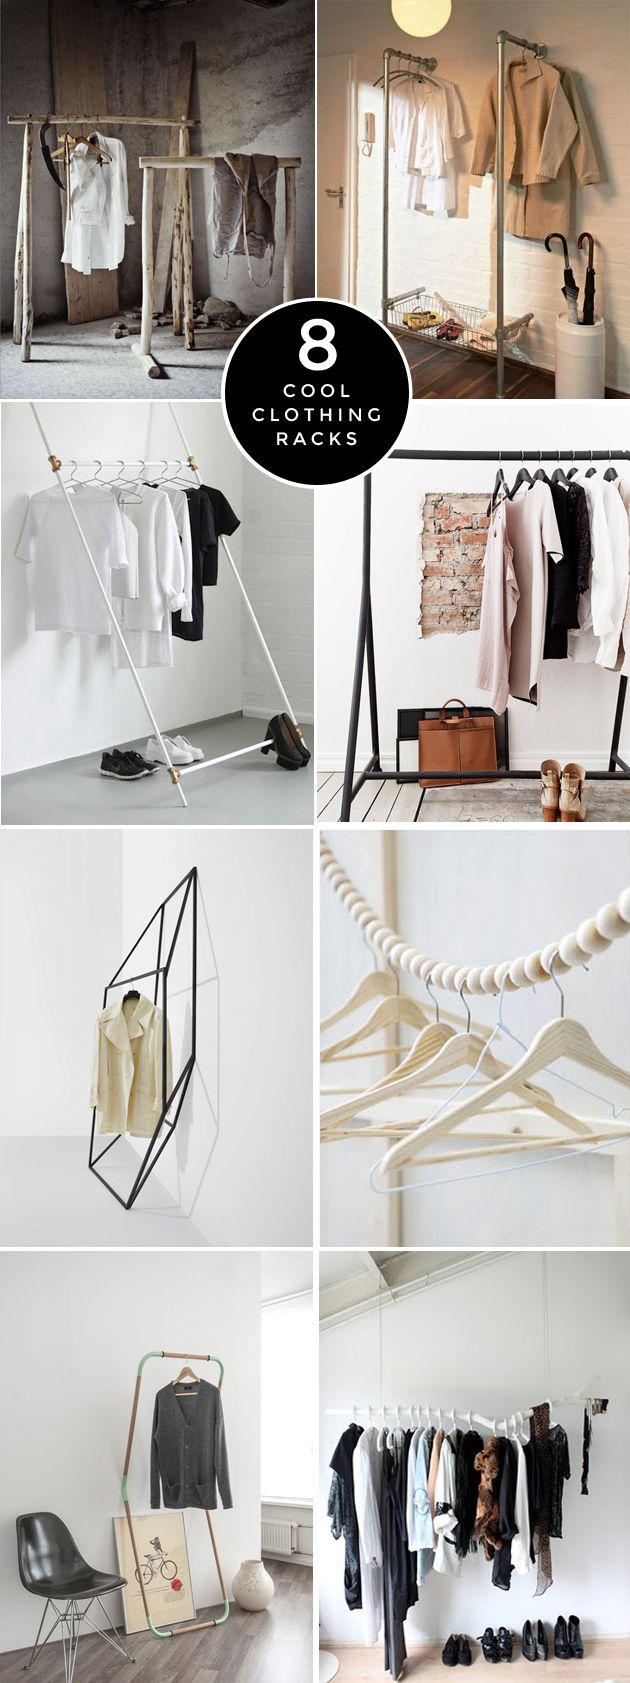 http://interiorcollective.com/fashion/alternative-ways-to-hang-your-clothes-in-your-bedroom